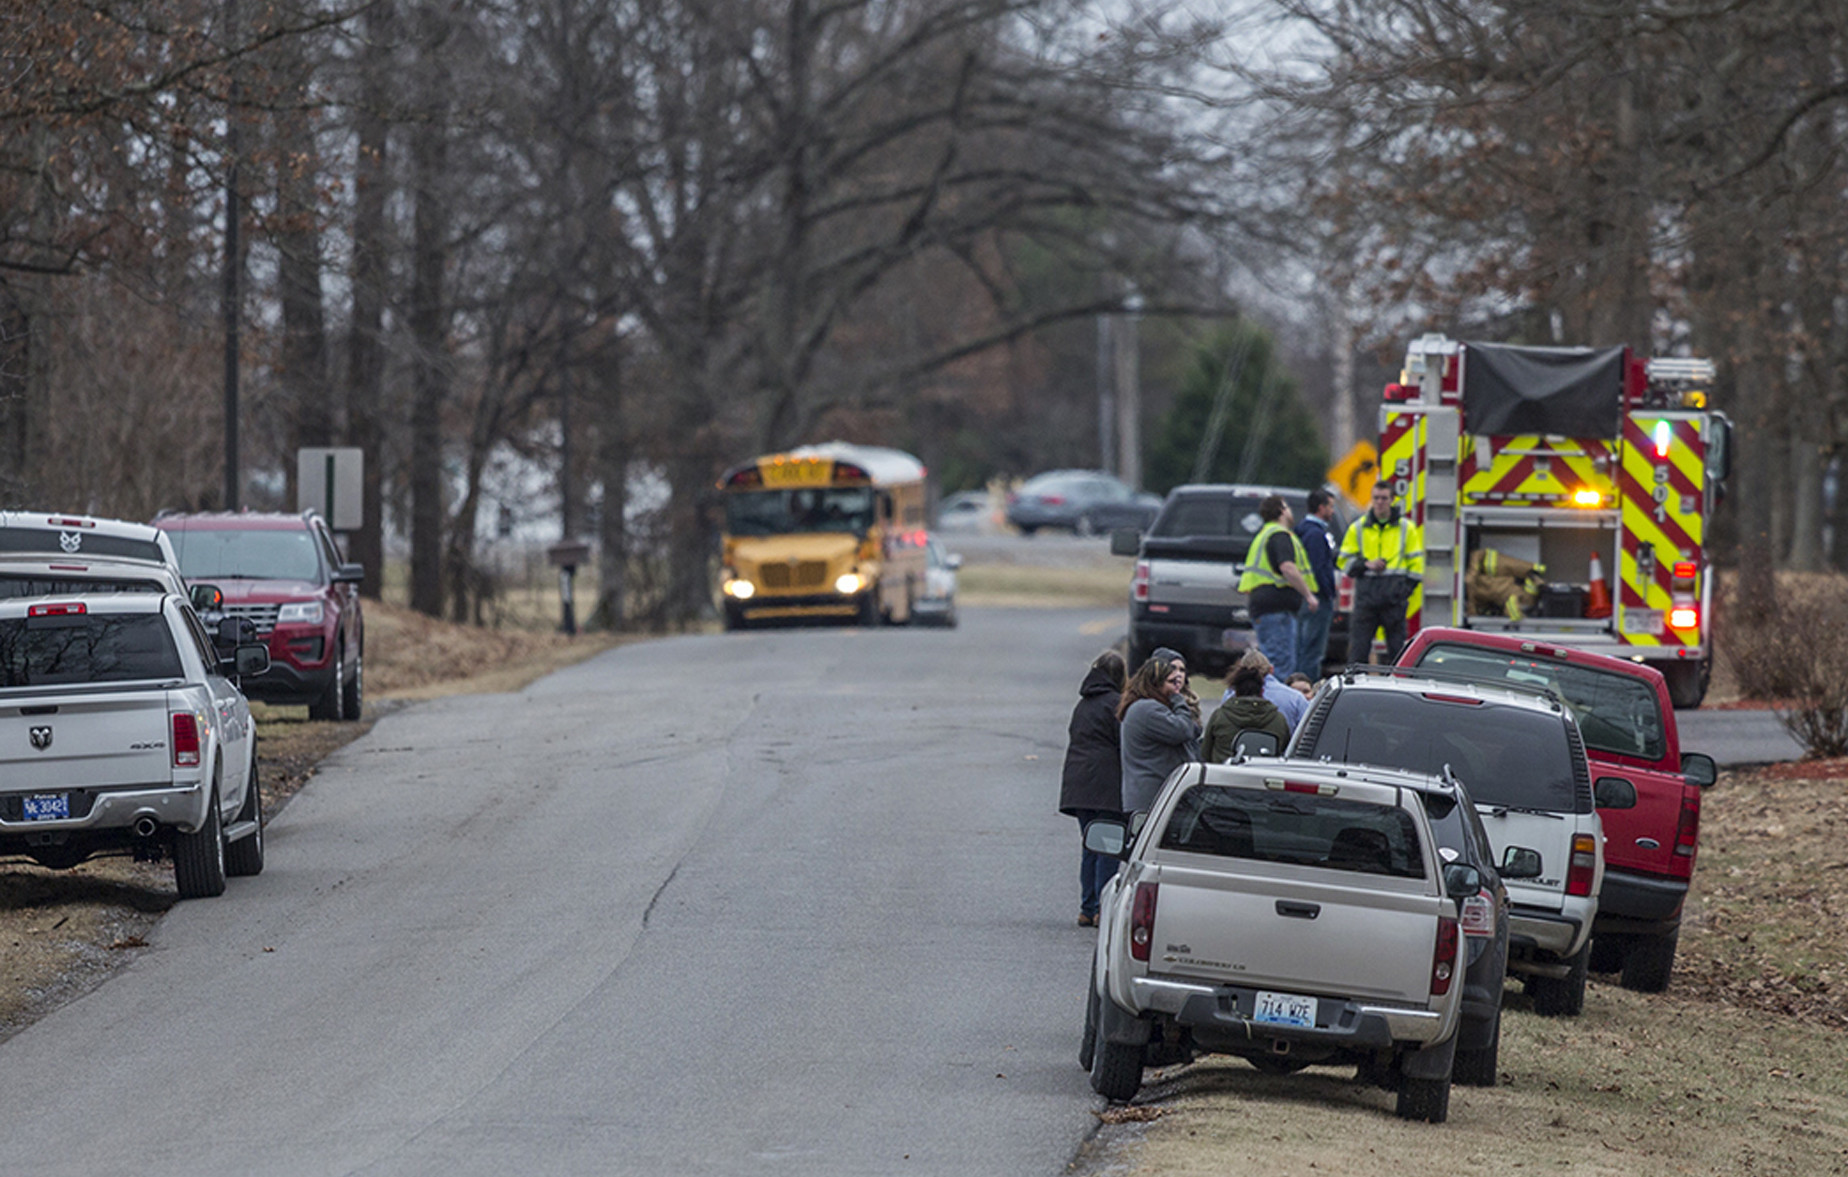 """columnine high shootings left 15 dead and 23 injured Analysis: how many school shootings have there been in 2018 so far  one in  the street, and two died later in hospital from their injuries  the killer was armed  with an ar-15 rifle and """"multiple magazines"""",  surpassing the 1999 rampage at  columbine high school in littleton,  14 feb 2018 23:41."""